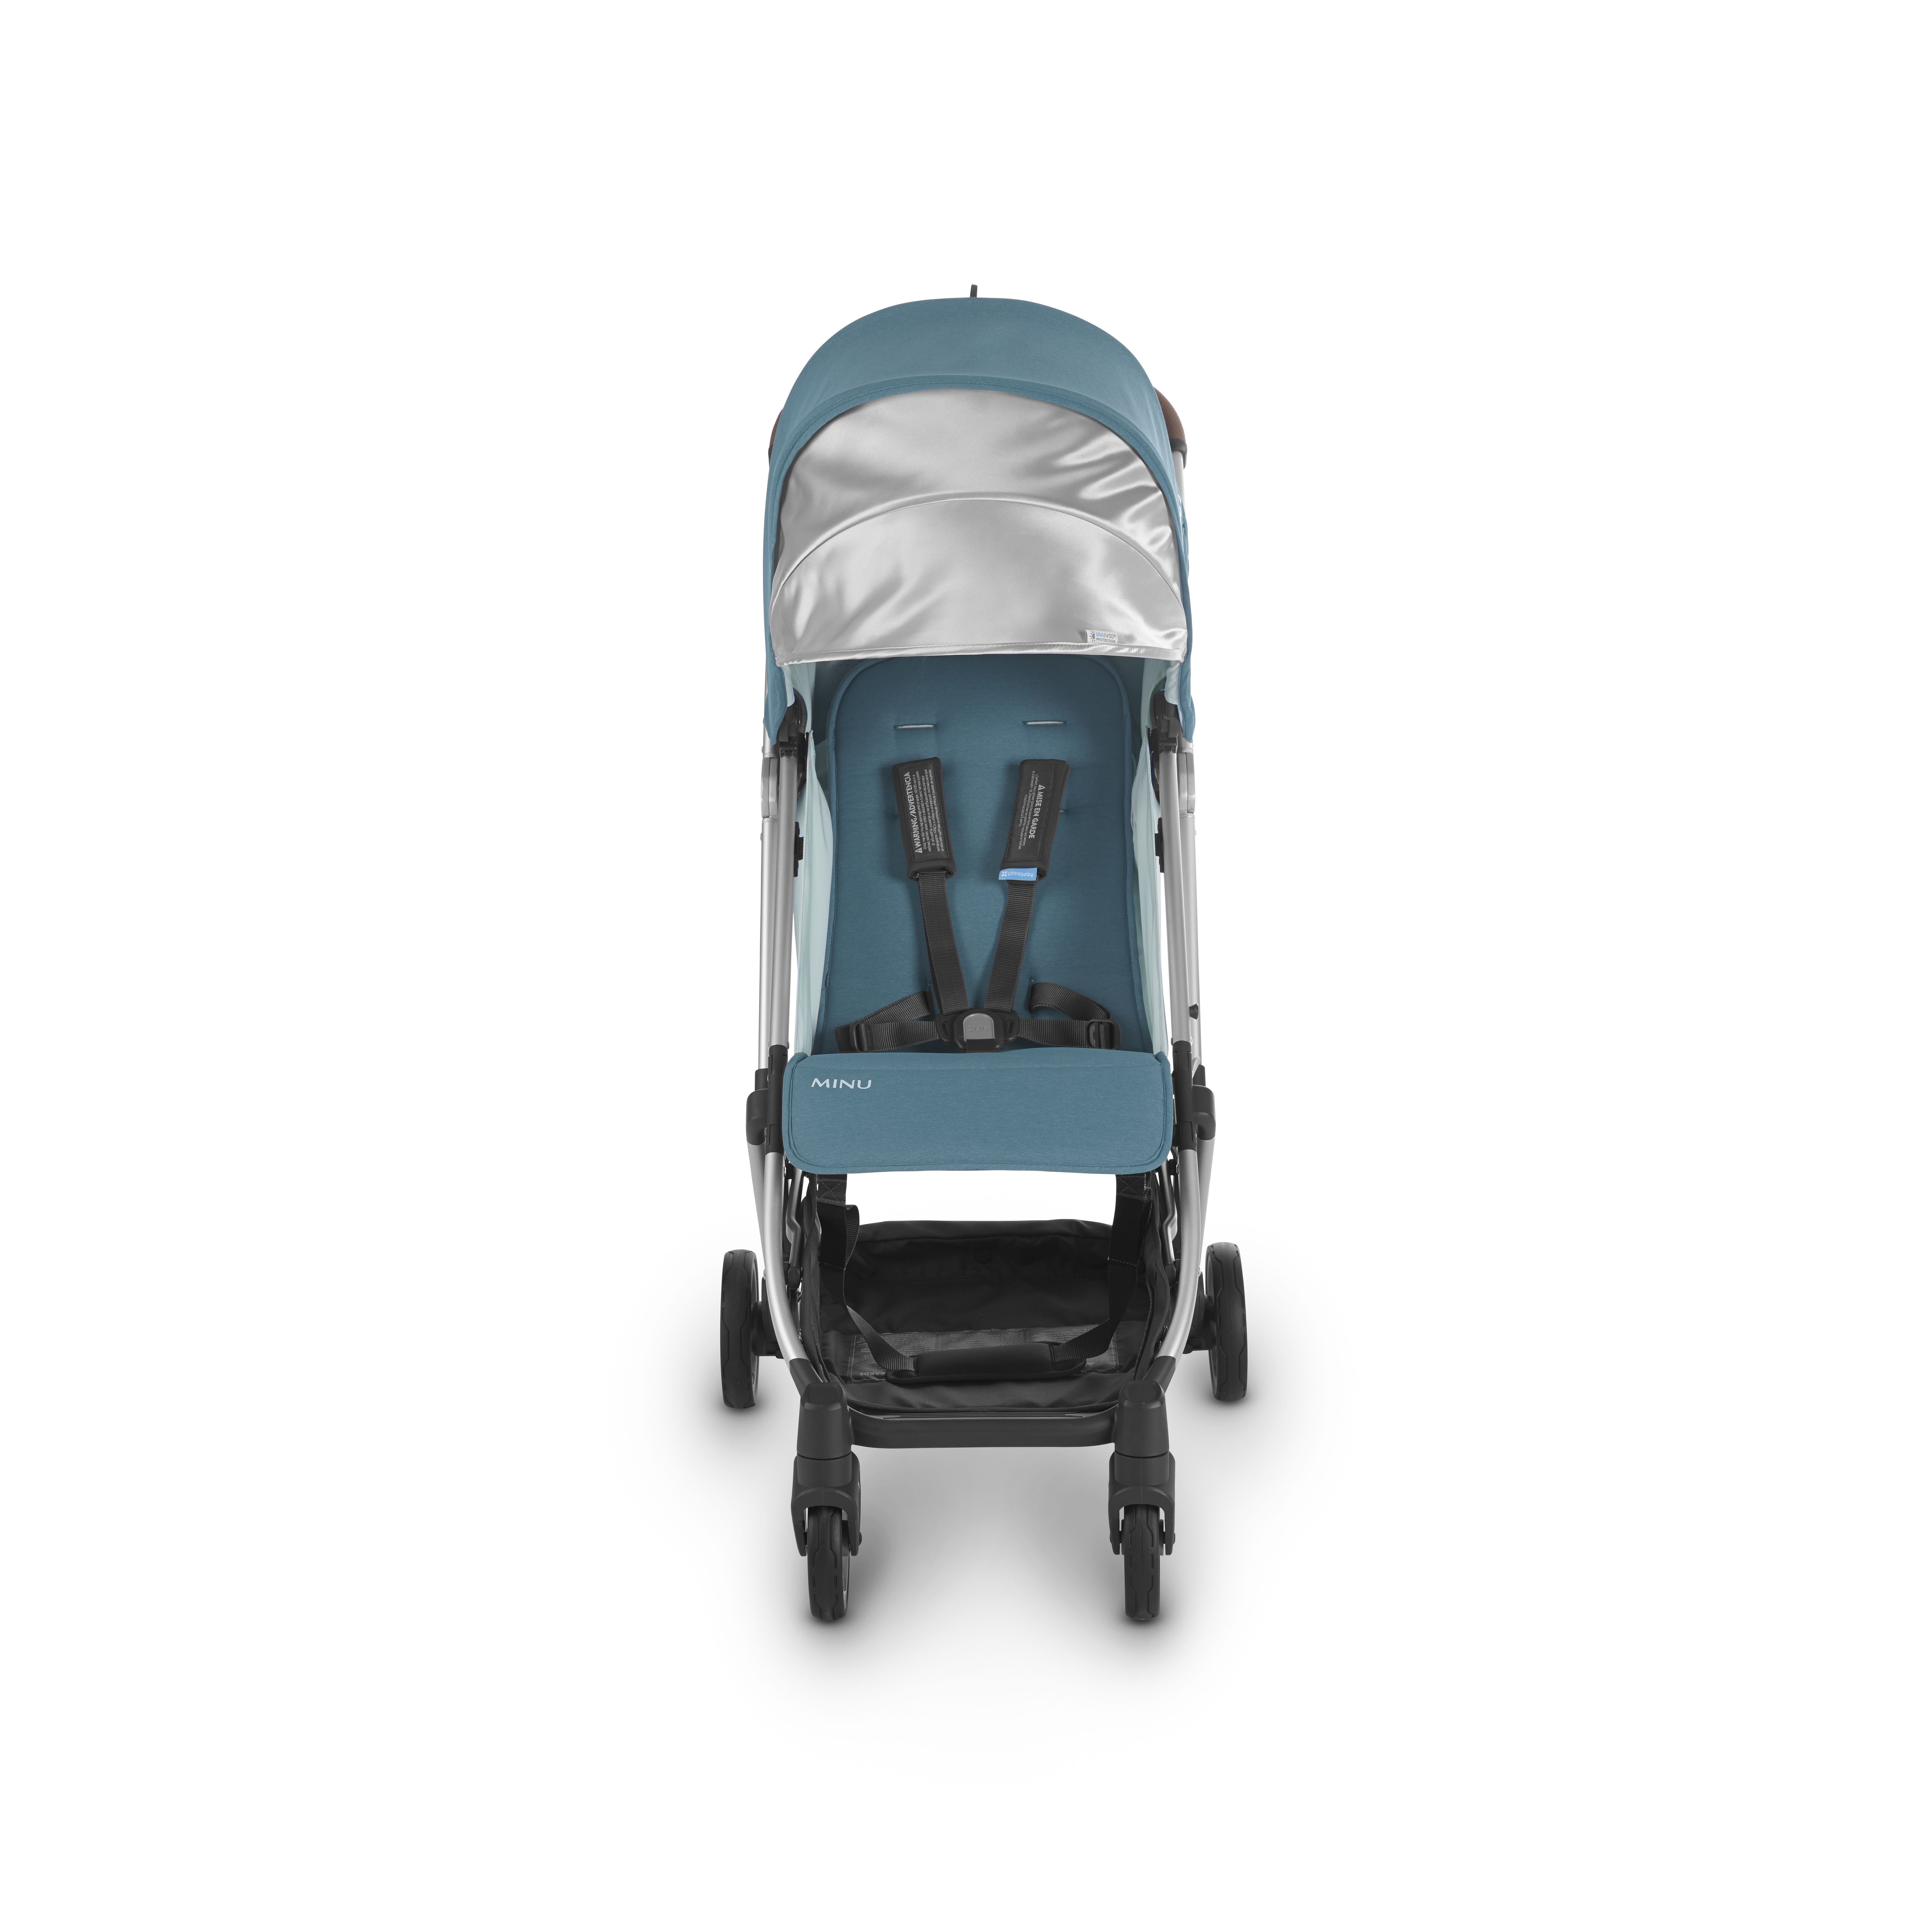 UPPAbaby MINU Stroller Review Our Top Stroller Pick for